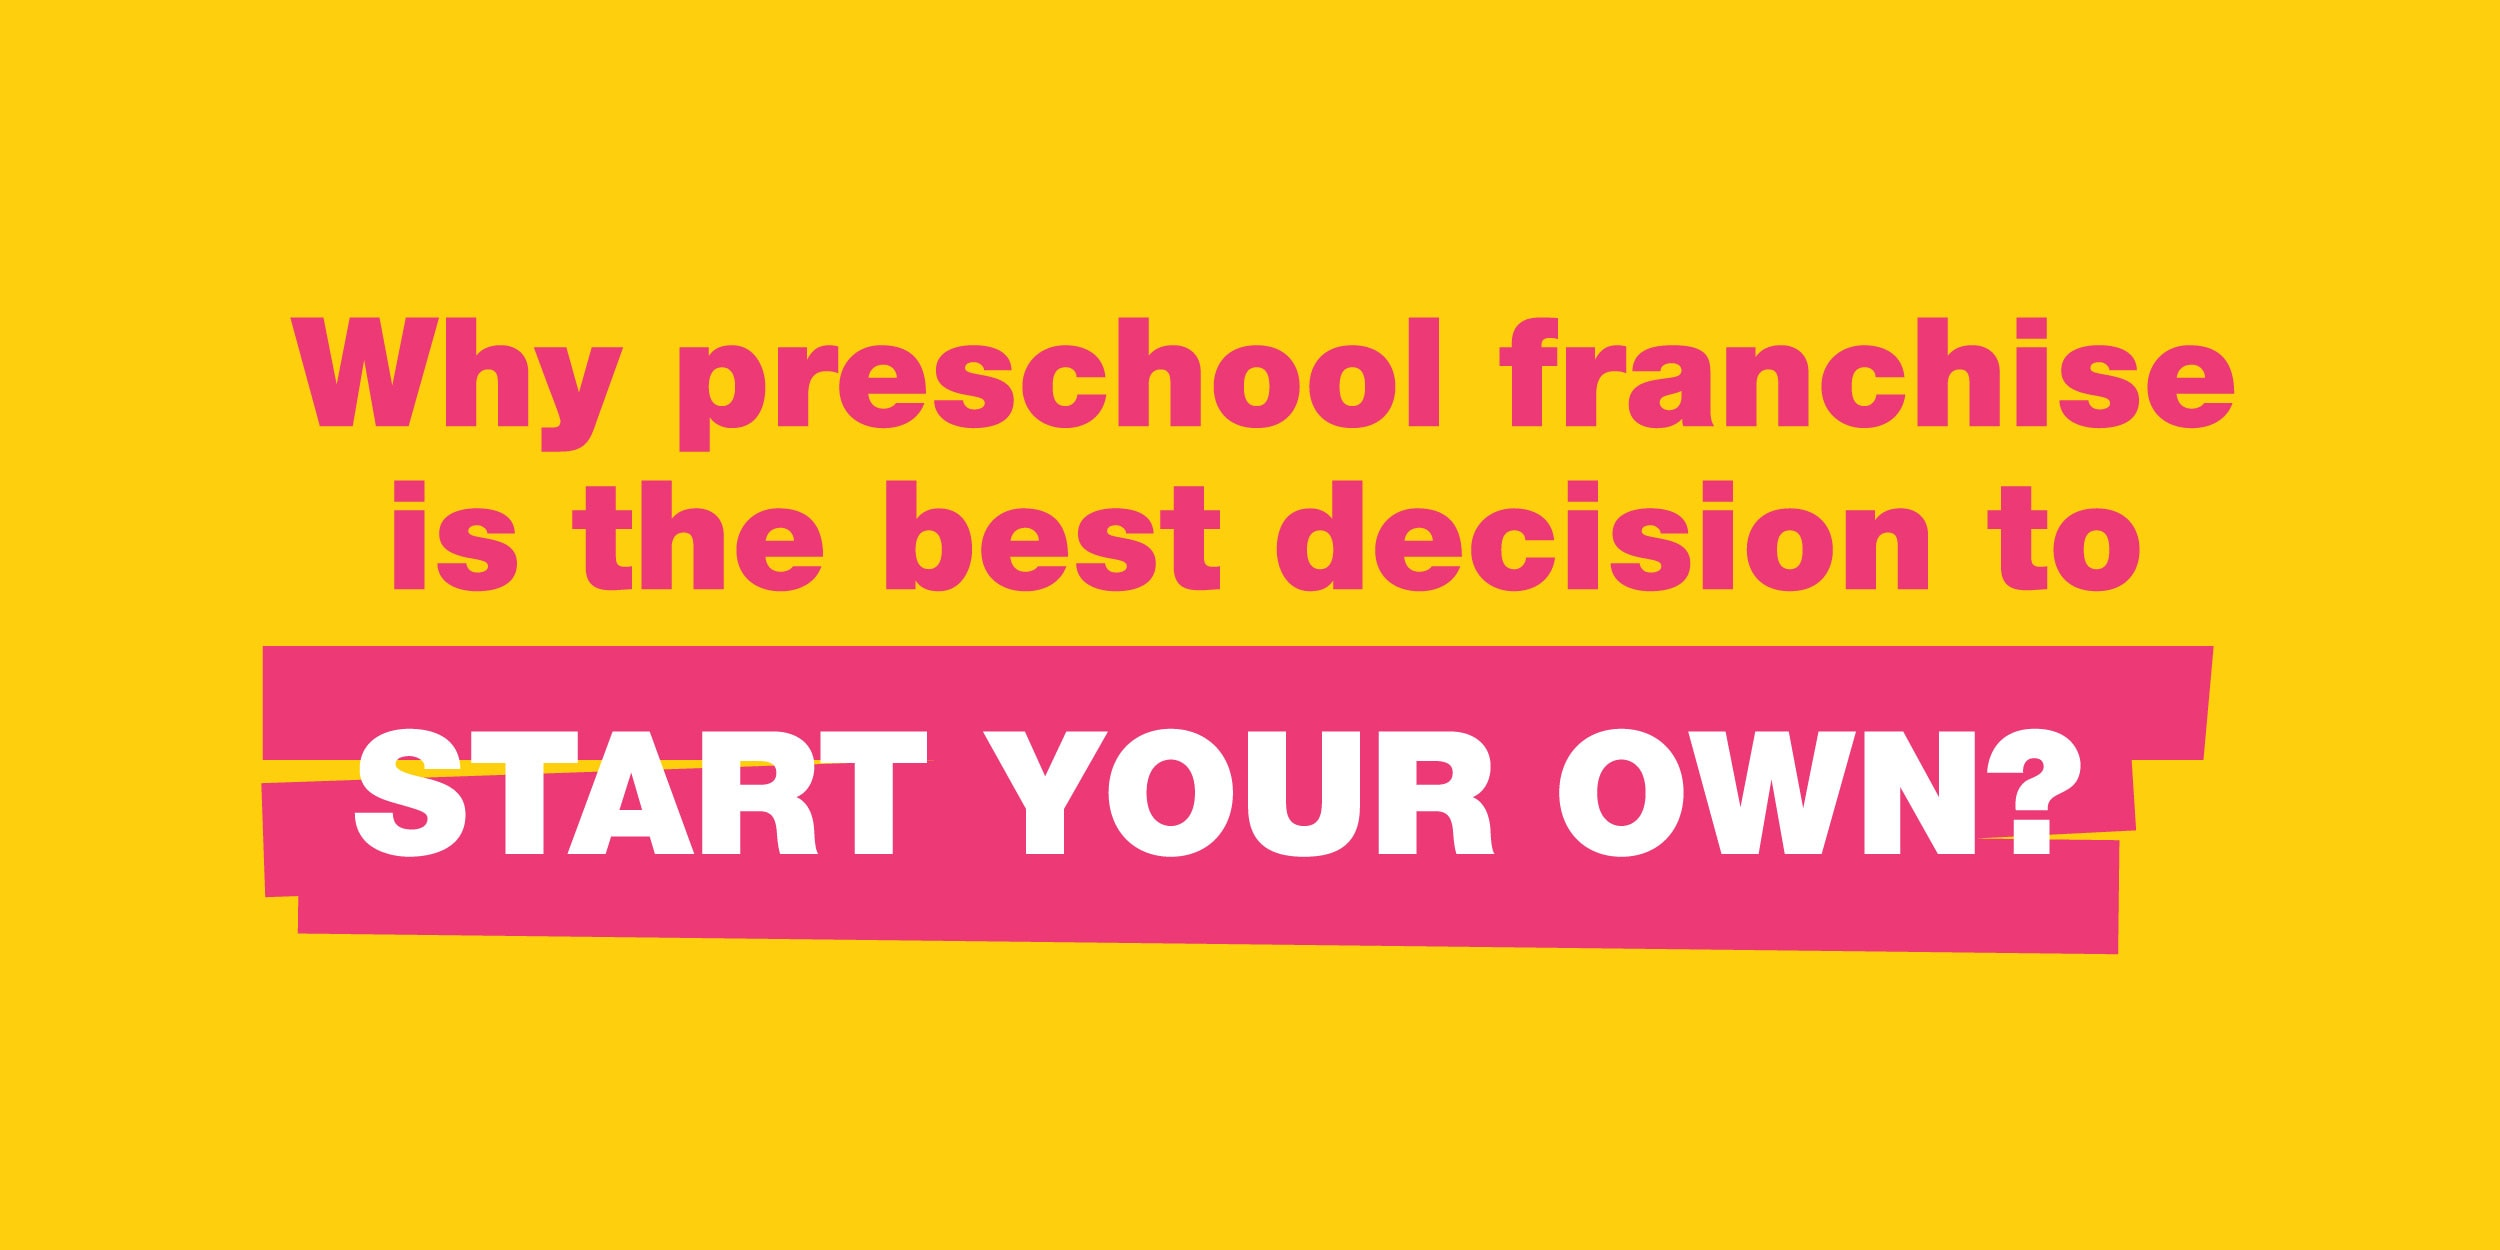 Why preschool franchise is the best decision to start your own?